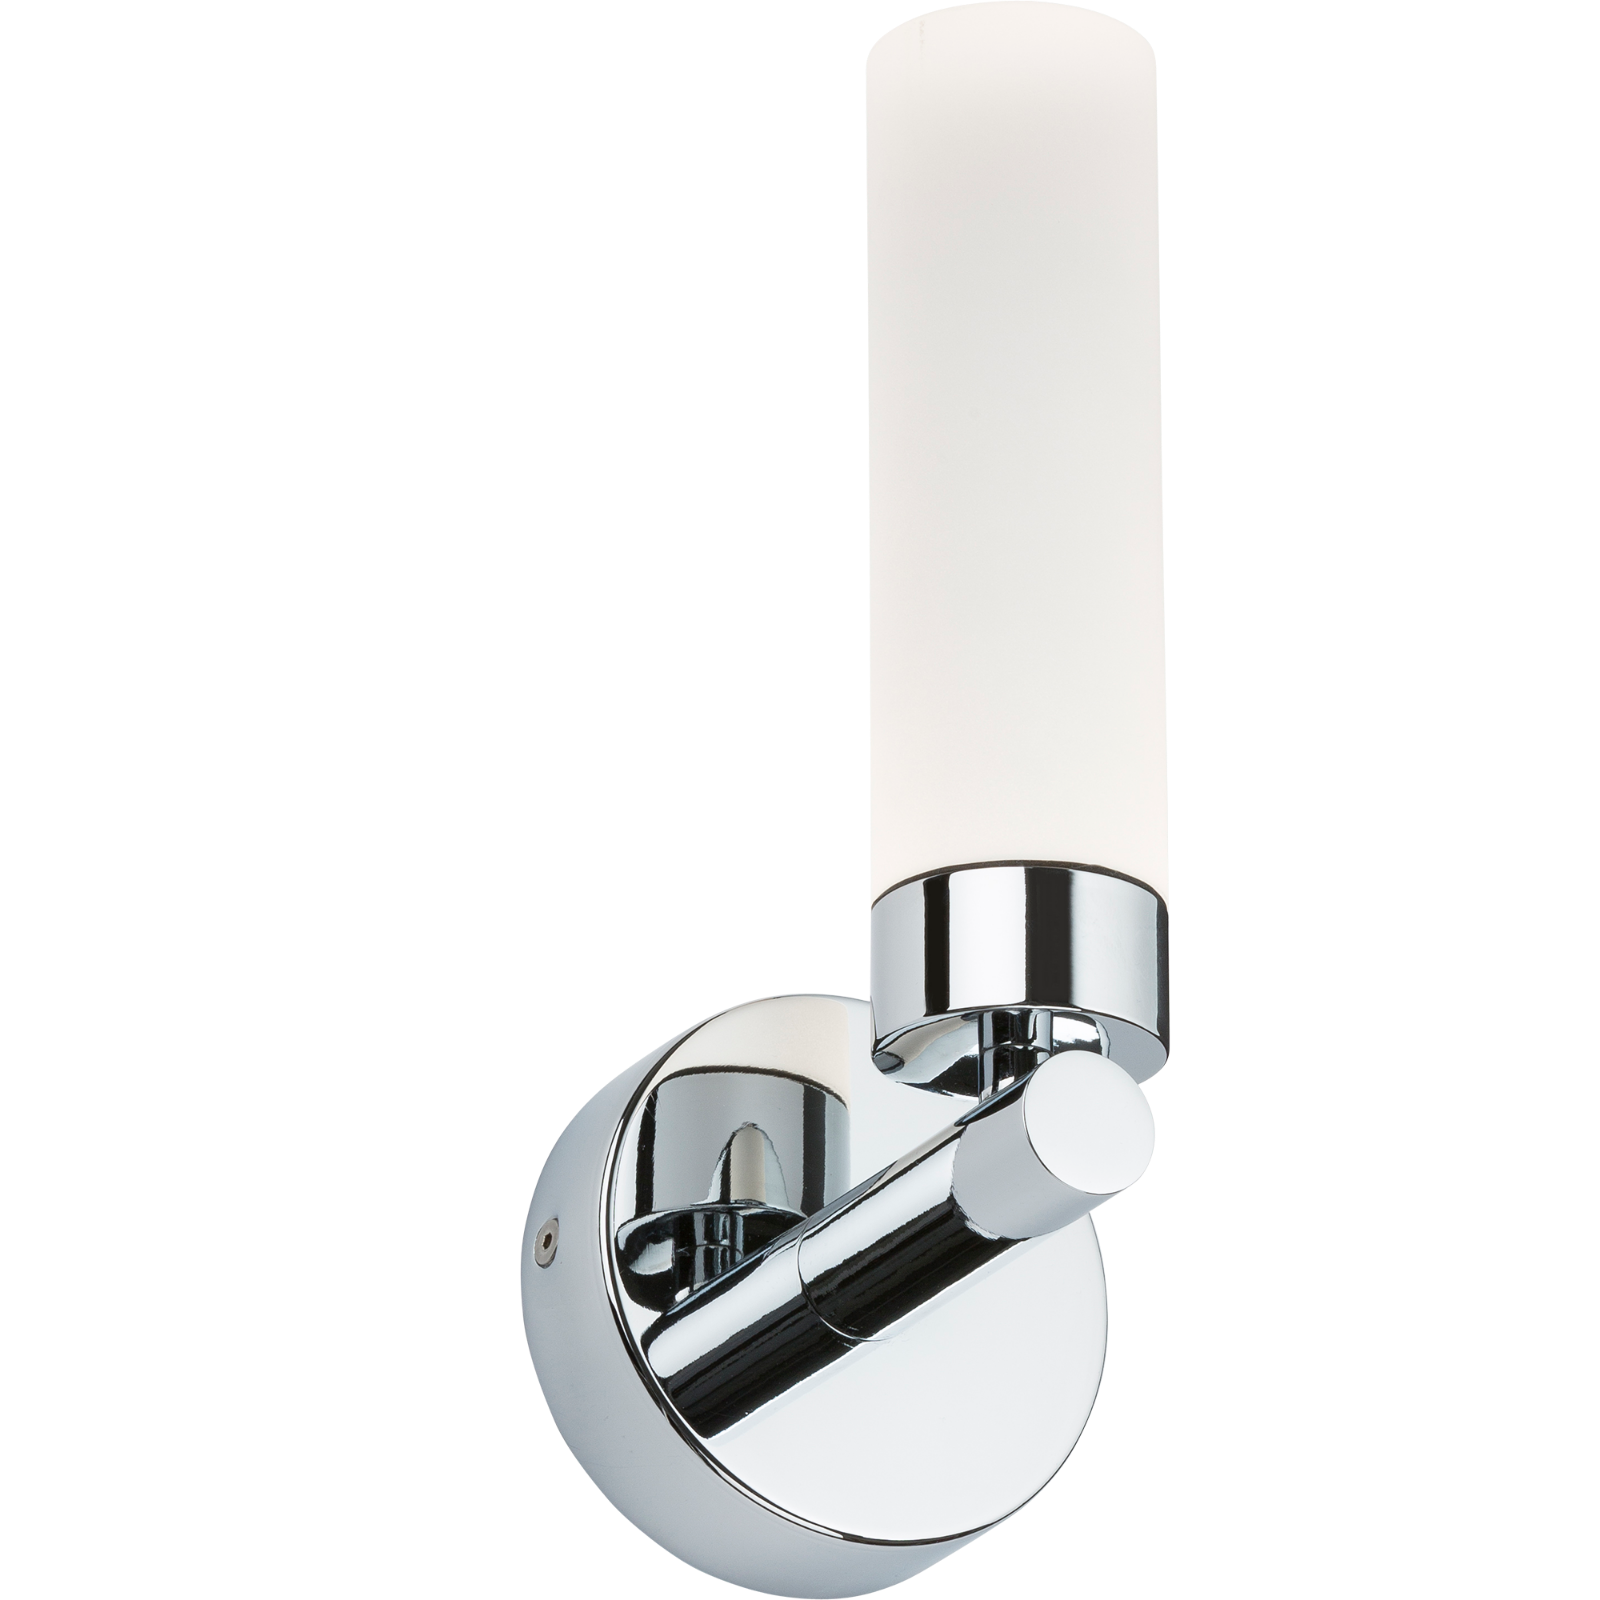 Contemorary Style Chrome LED Bathroom Wall Light - Single or Twin IP44 - 7W LED